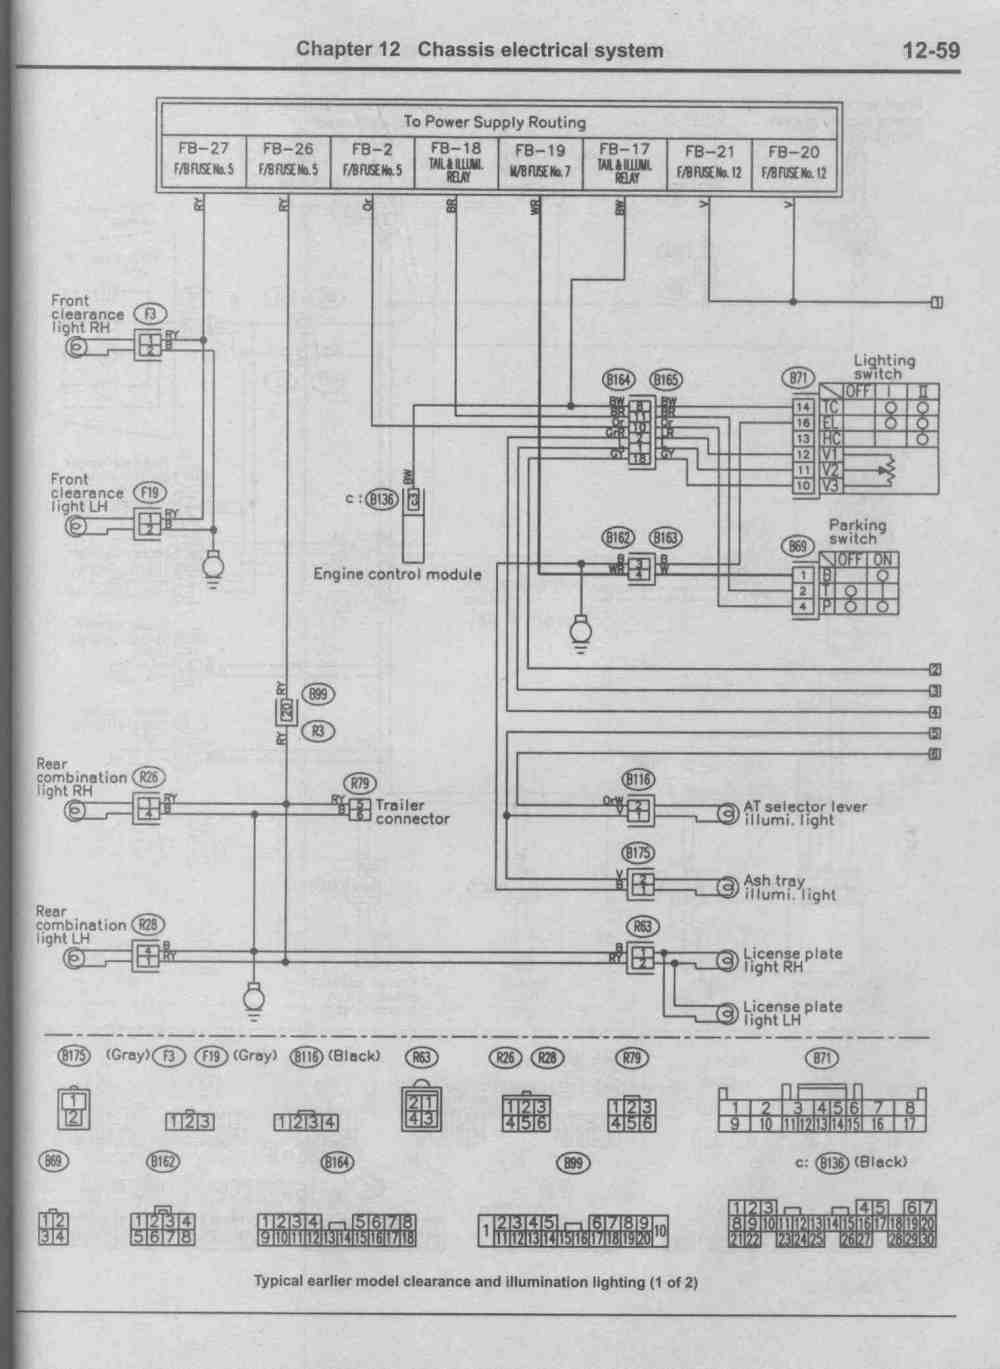 medium resolution of subaru impreza 98 wiring diagram wiring diagram2008 subaru wrx wiring diagram 8 15 stromoeko de